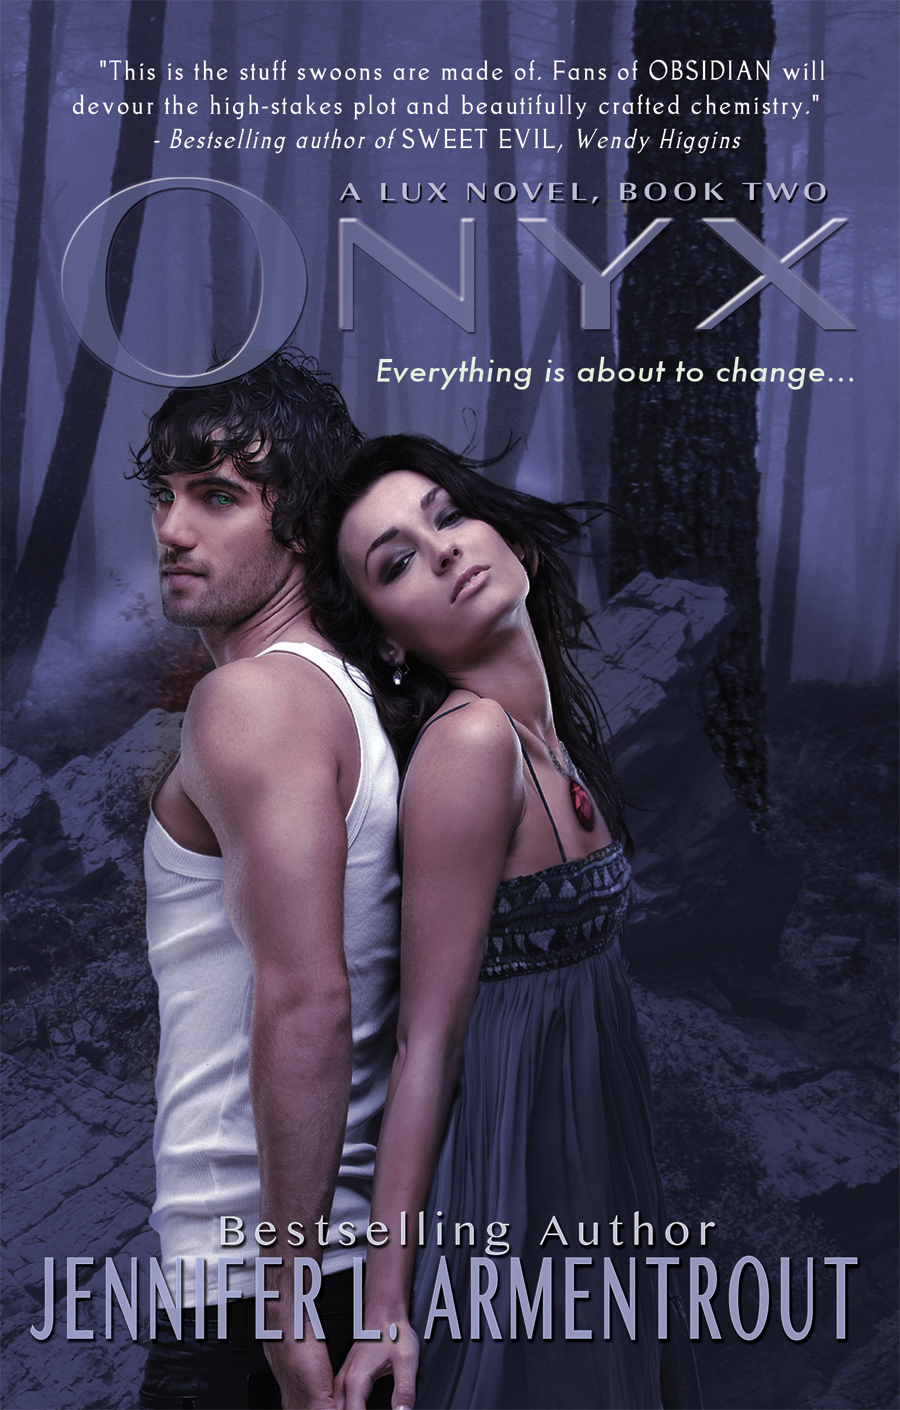 Onyx By: Jennifer L. Armentrout